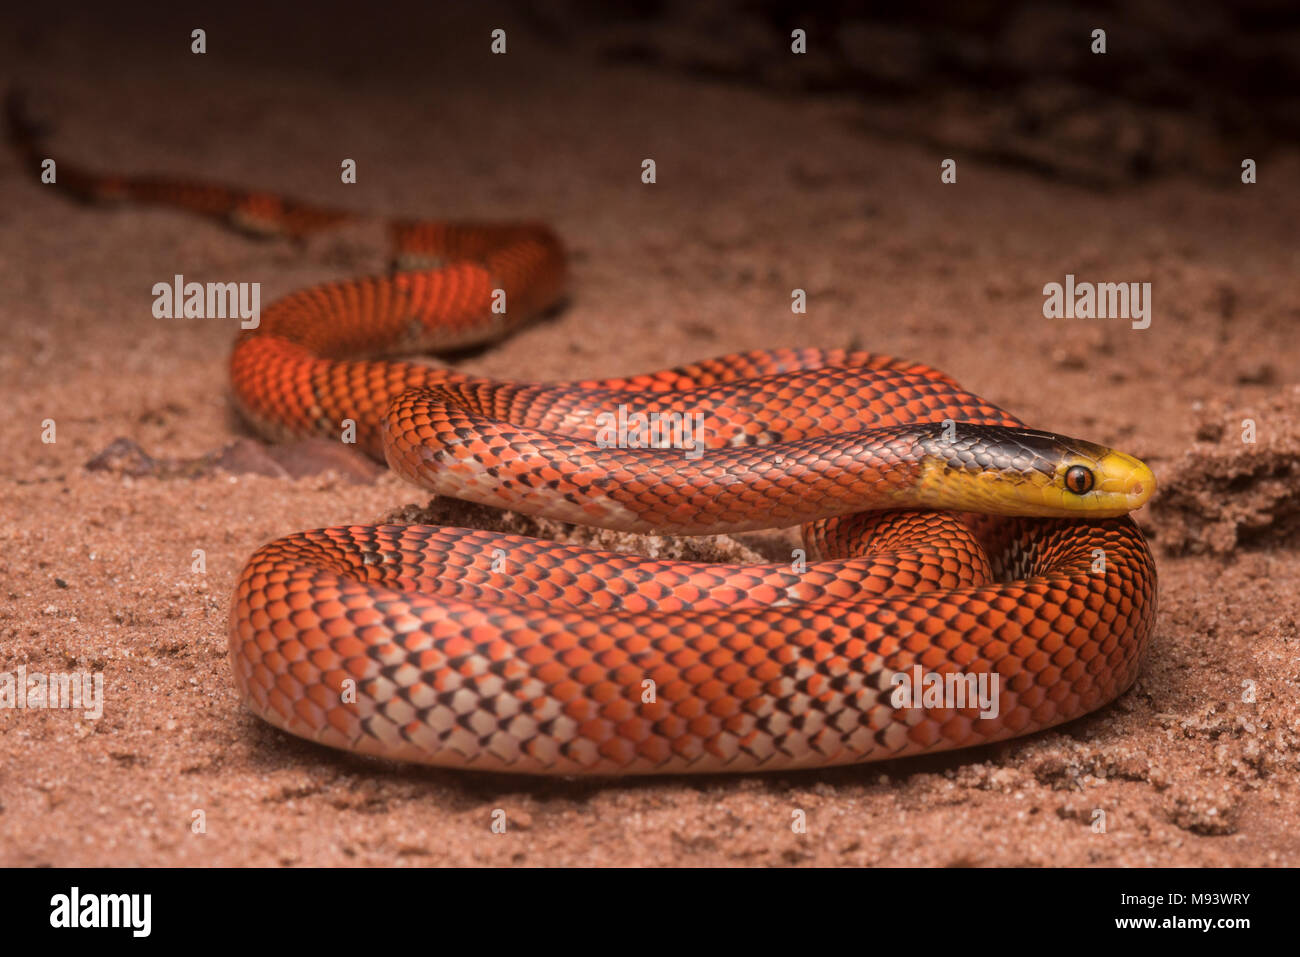 The Formosa false coral snake (Oxyrhopus formosus) is a harmless snake species.  It is one of the most colorful snakes in the jungle. - Stock Image